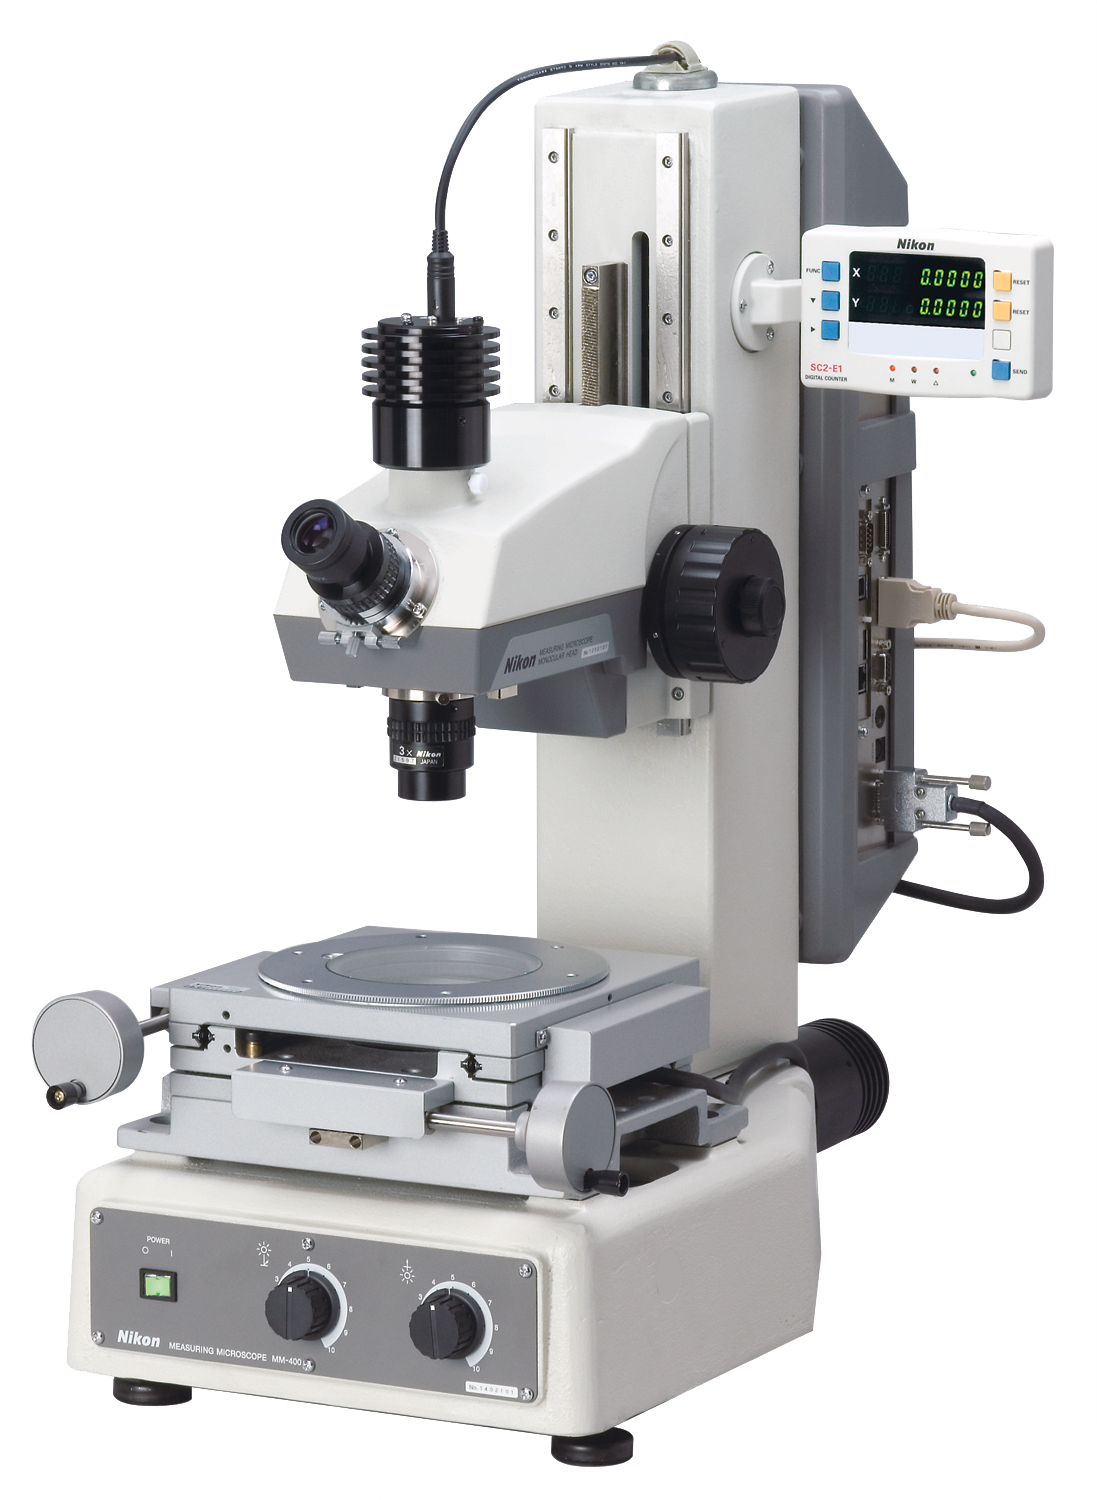 Nikon MM-400/800 Series Measuring Microscopes